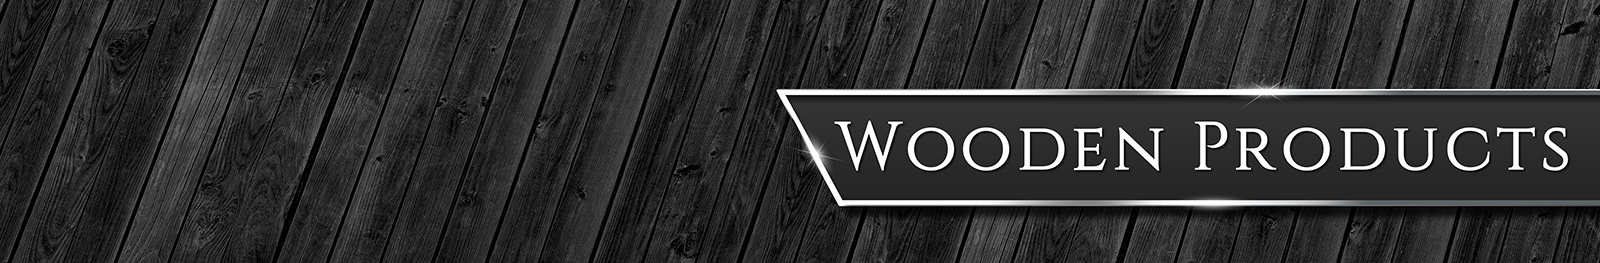 Wooden Products Page Banner